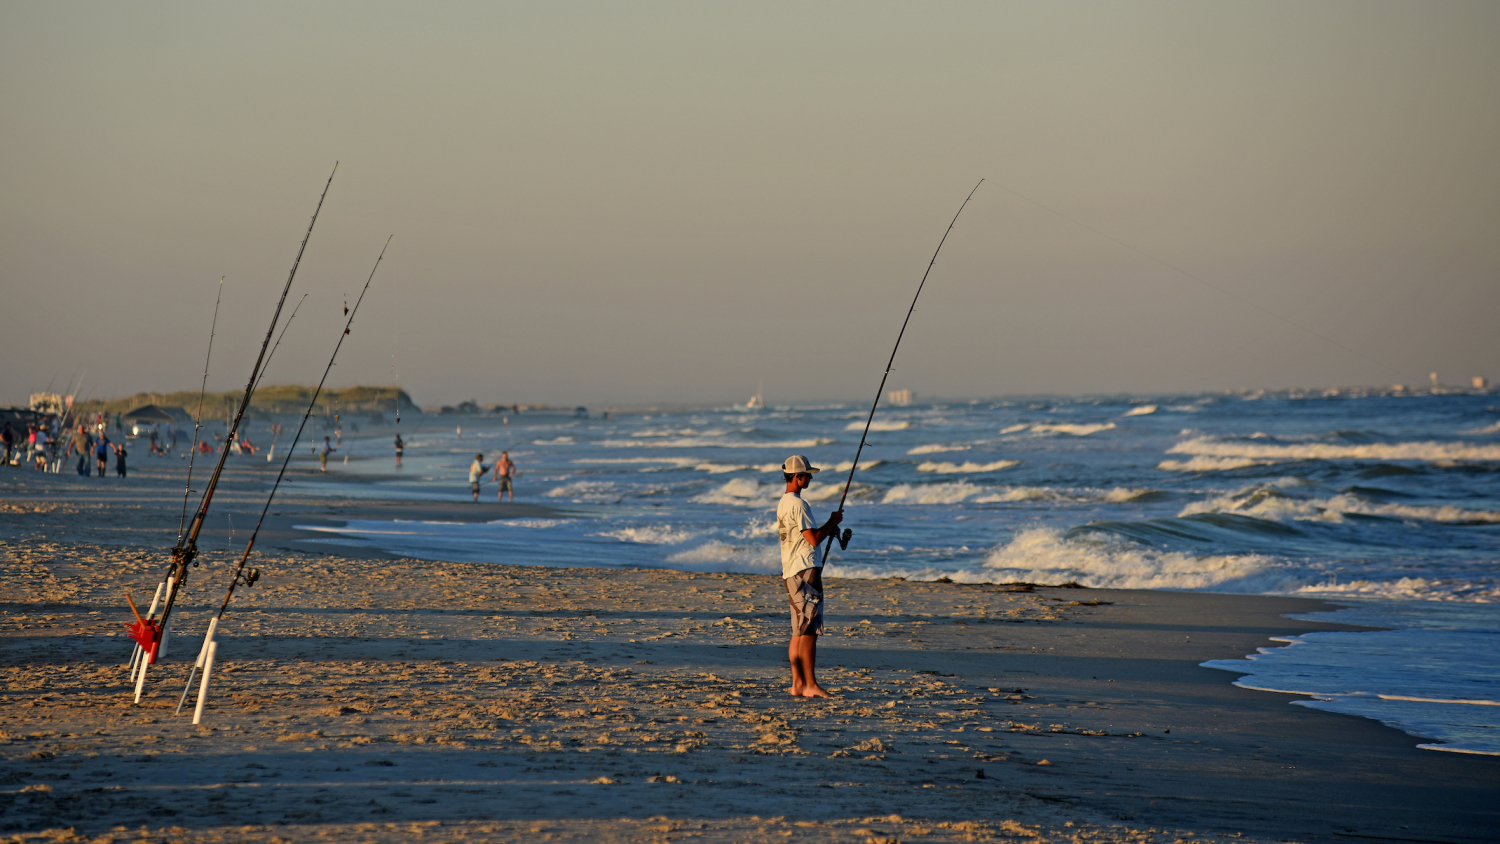 Fisherman on the Beach - Ensuring Cleaner Air and Water - Forestry and Environmental Resources NC State University